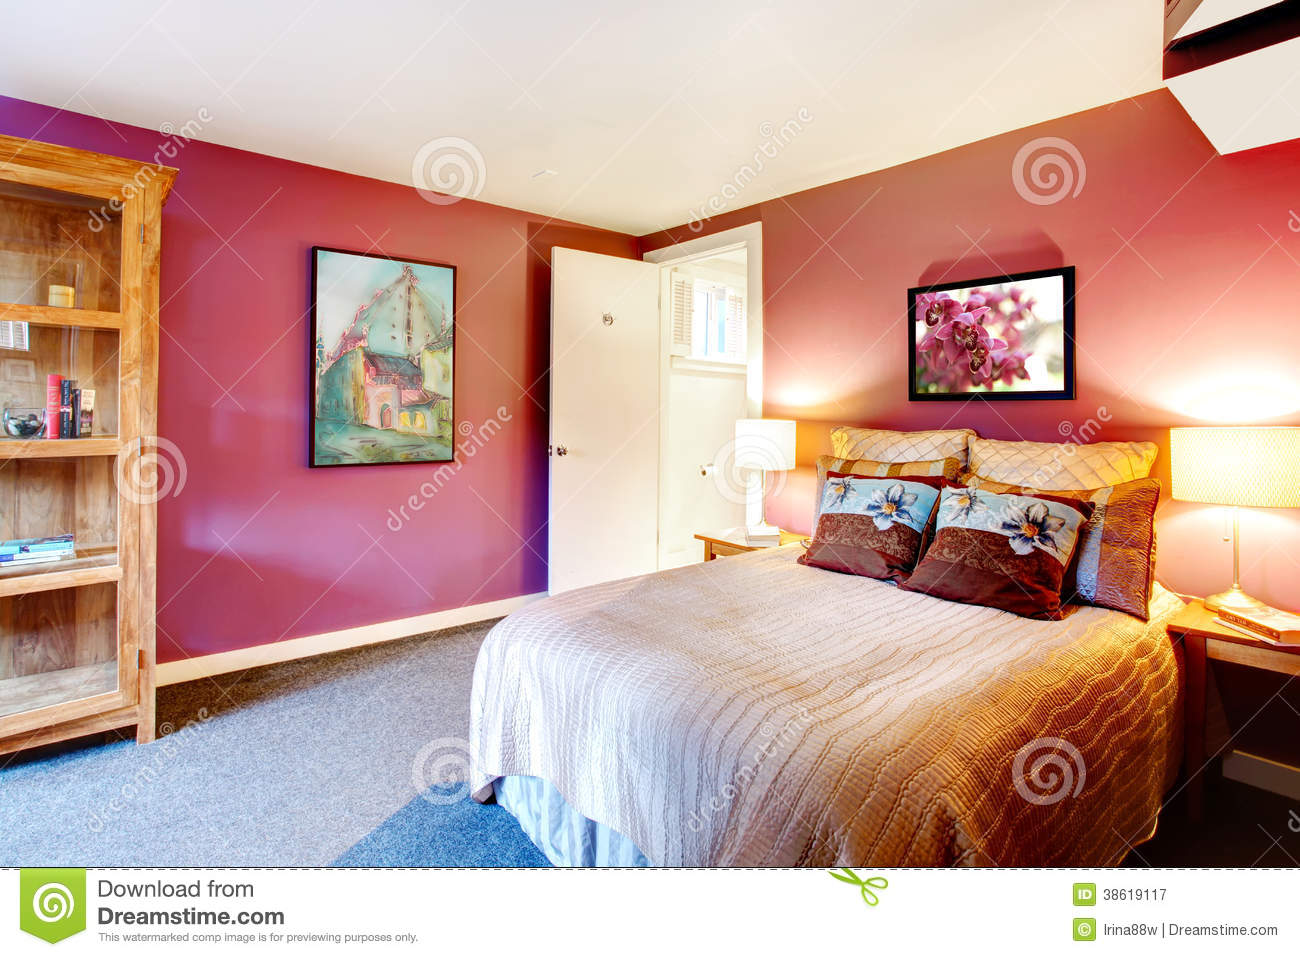 Contrast color beautiful bedroom stock image image of modern inside 38619117 - Image of beautiful bed rooms ...